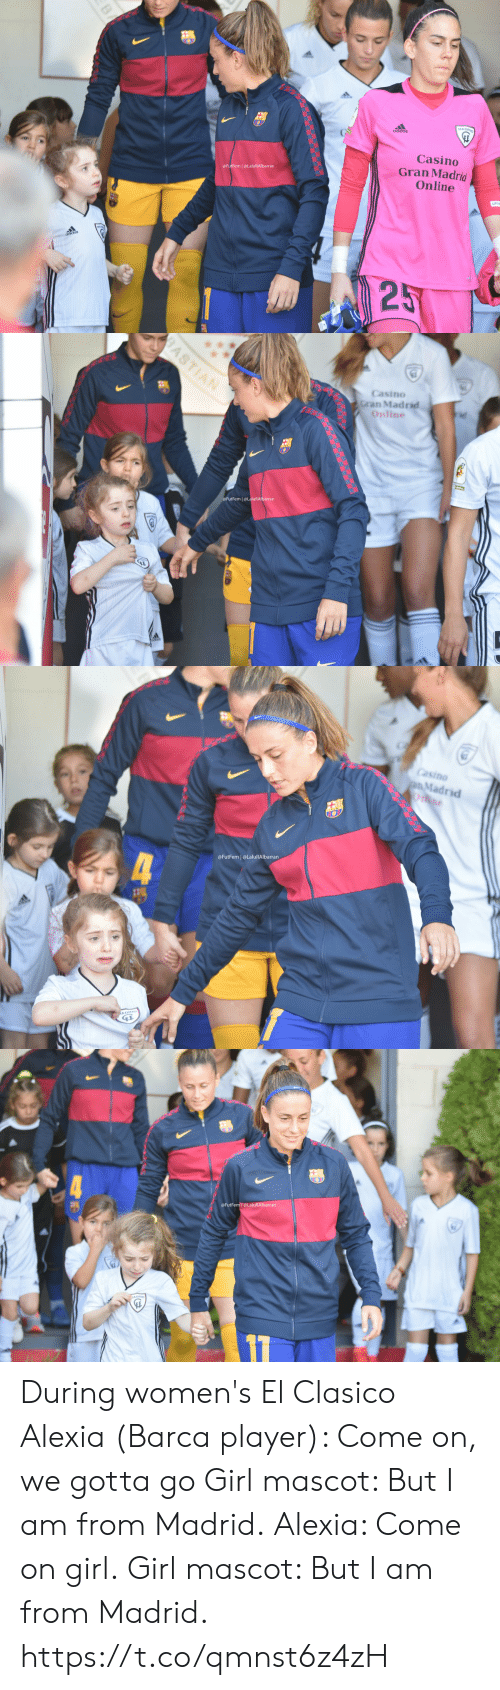 Casino: Casino  Gran Madrid  Online  @FutFem | @LaluRAlbarran  25  BA   BASTIAN  Casino  Gran Madrid  Online  FutFem @LaluRAlbarran   Casino  pMadrid  Onne  @FutFem @LaluRAlbarran  4  KADRIO   @FutFem@LaluRAlbarran During women's El Clasico  Alexia (Barca player): Come on, we gotta go Girl mascot: But I am from Madrid. Alexia: Come on girl. Girl mascot: But I am from Madrid.  https://t.co/qmnst6z4zH